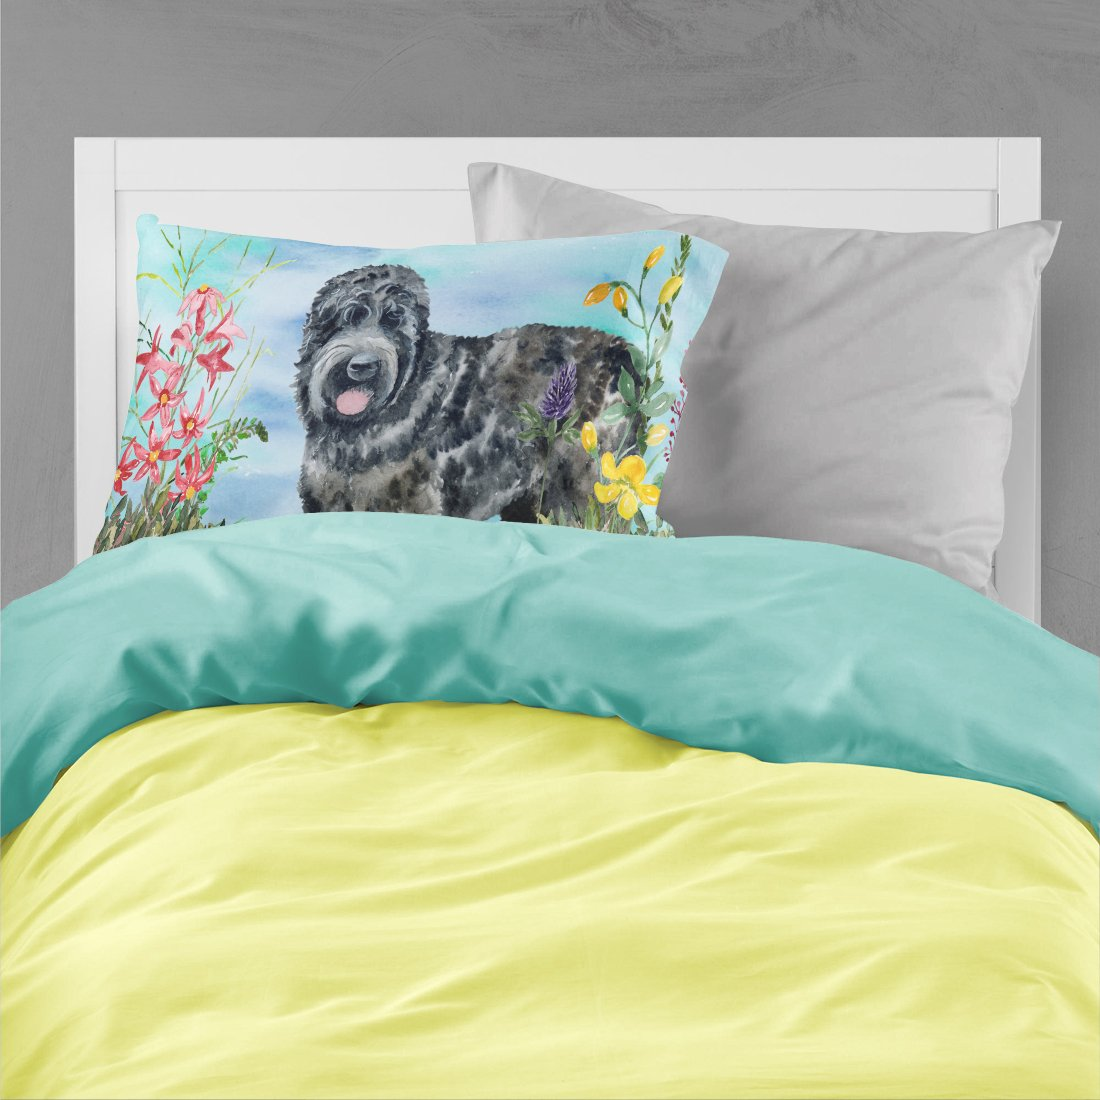 Black Russian Terrier Spring Fabric Standard Pillowcase CK1239PILLOWCASE by Caroline's Treasures